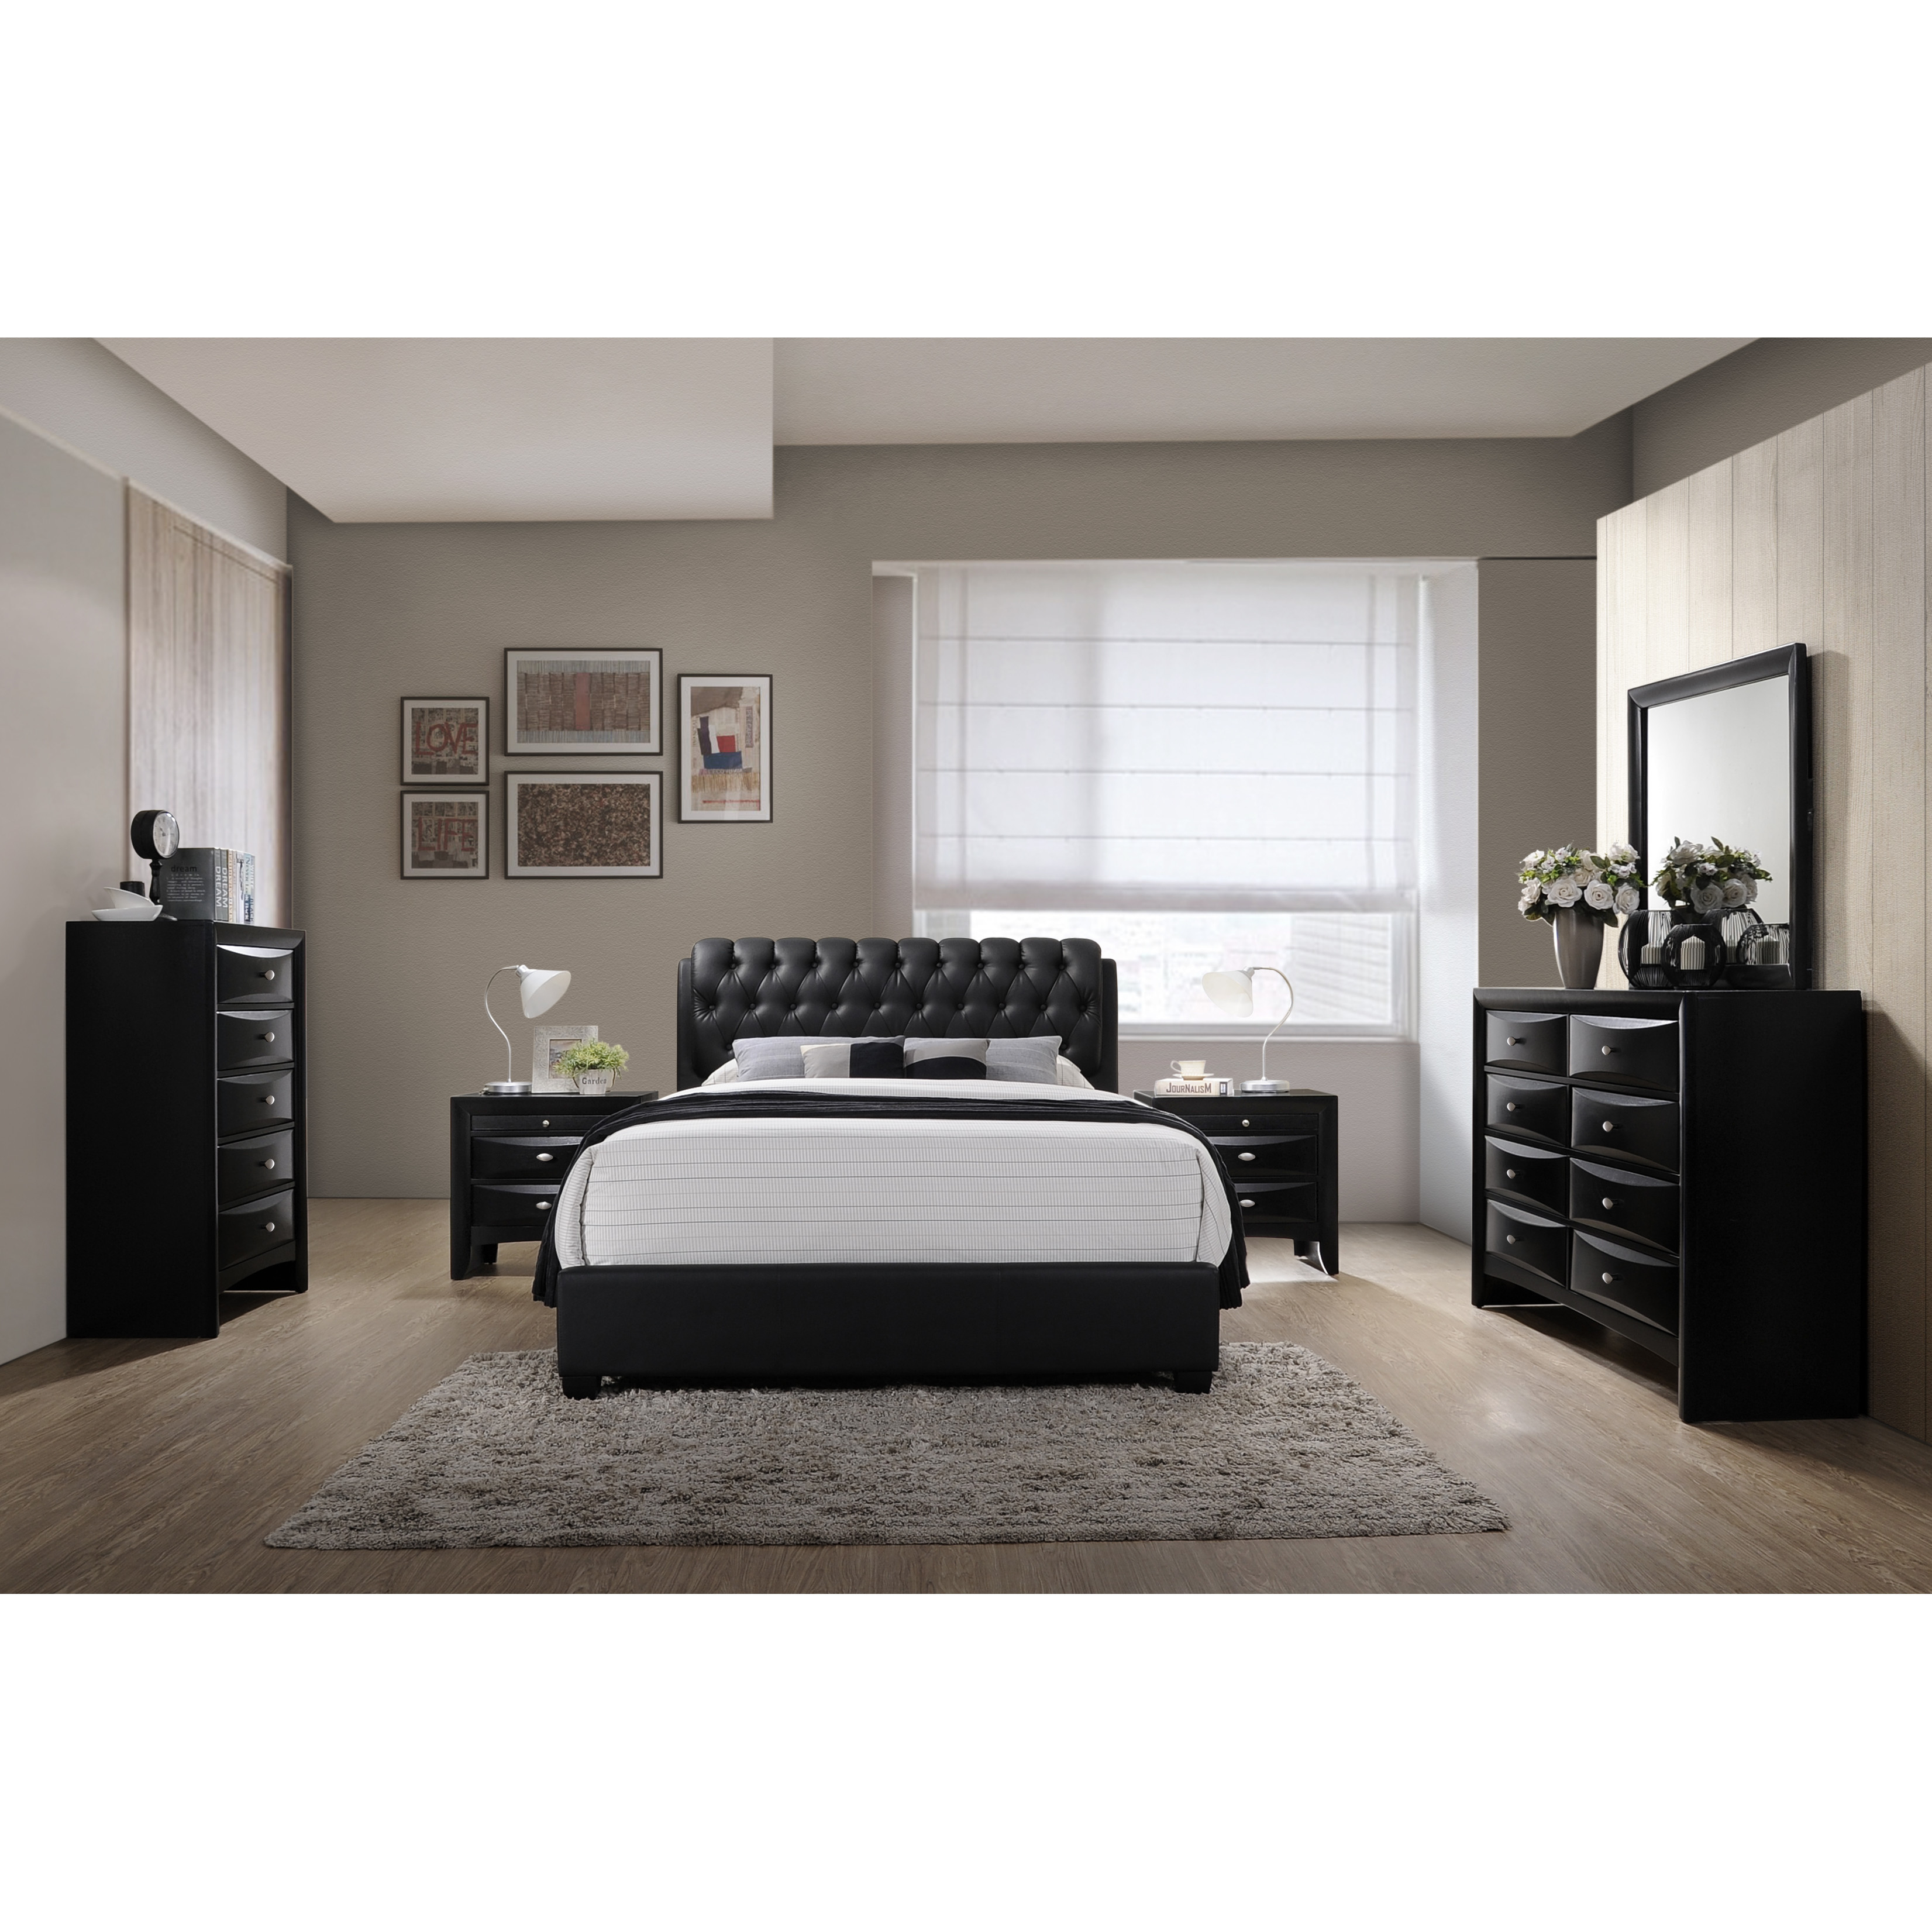 Best ideas about Wayfair Bedroom Sets . Save or Pin Roundhill Furniture Blemerey 6 Piece Bedroom Set Now.